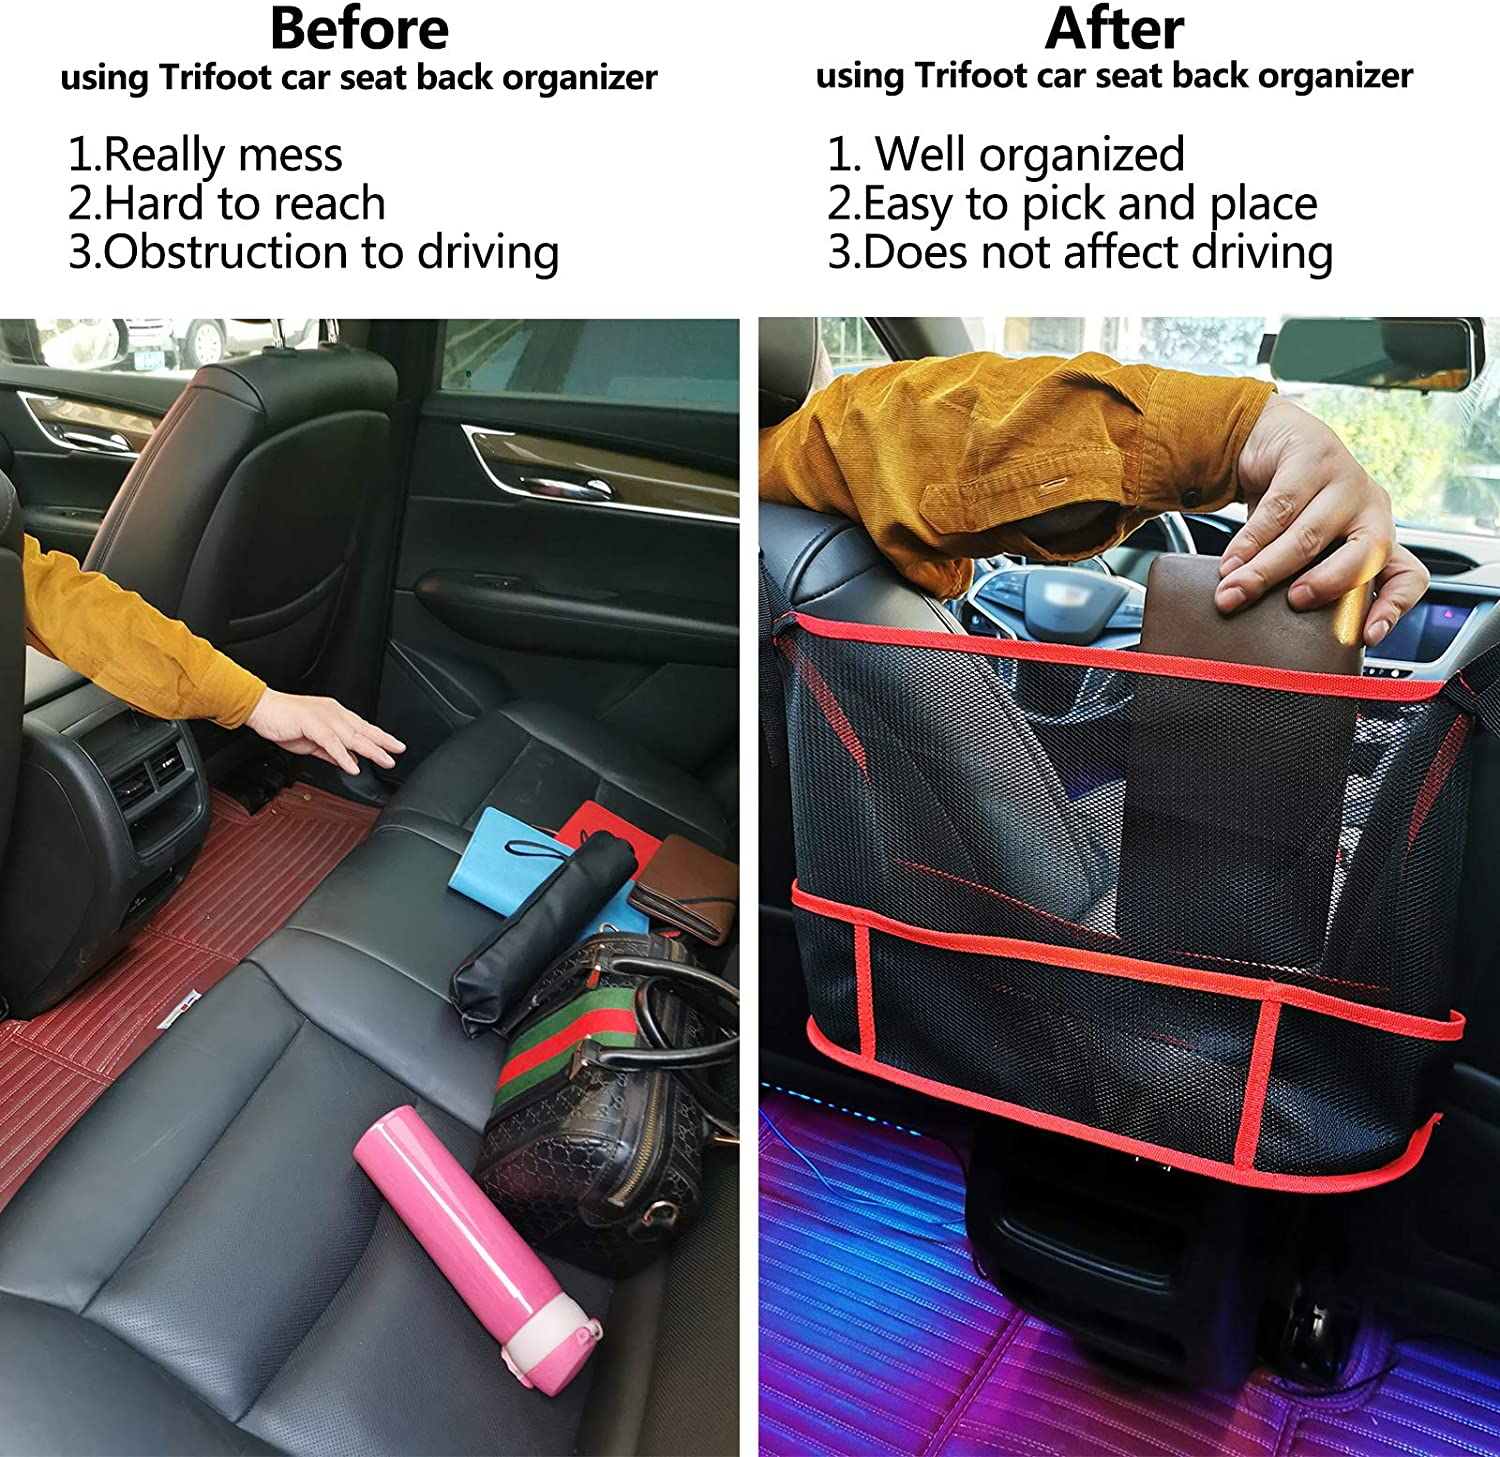 Upgrade Version-Red Trifoot Car Net Pocket Handbag Holder,Multi-function Organizer Mesh between front seats,Large Capacity Storage Net Bag for Purse,Document and other stuff Barrier of Backseat Pet,Kids